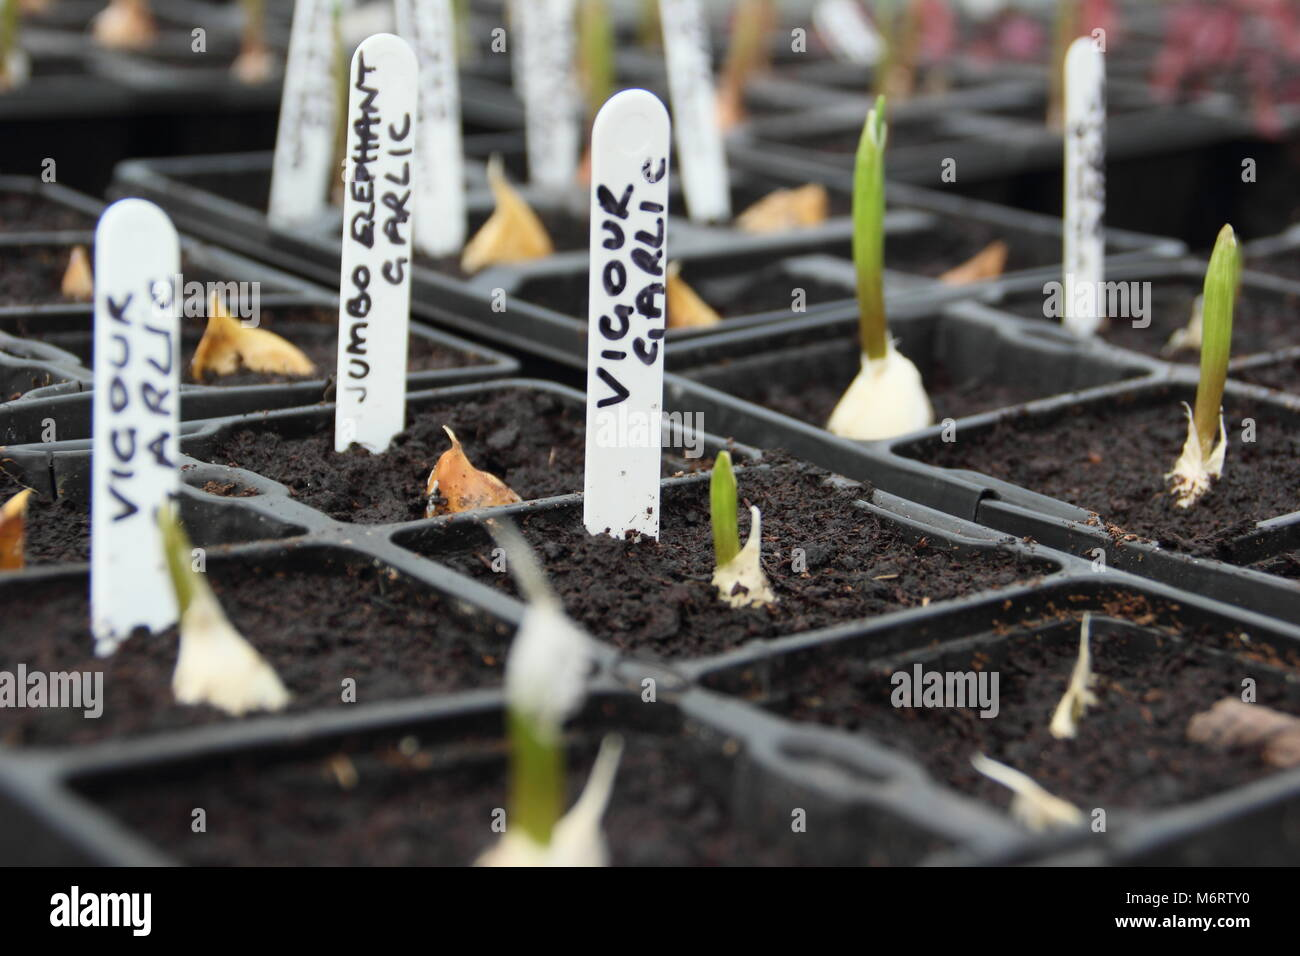 Vigour and Jumbo Elephant garlic. Young garlic plants emerging from modular trays in a greenhouse, UK garden - Stock Image